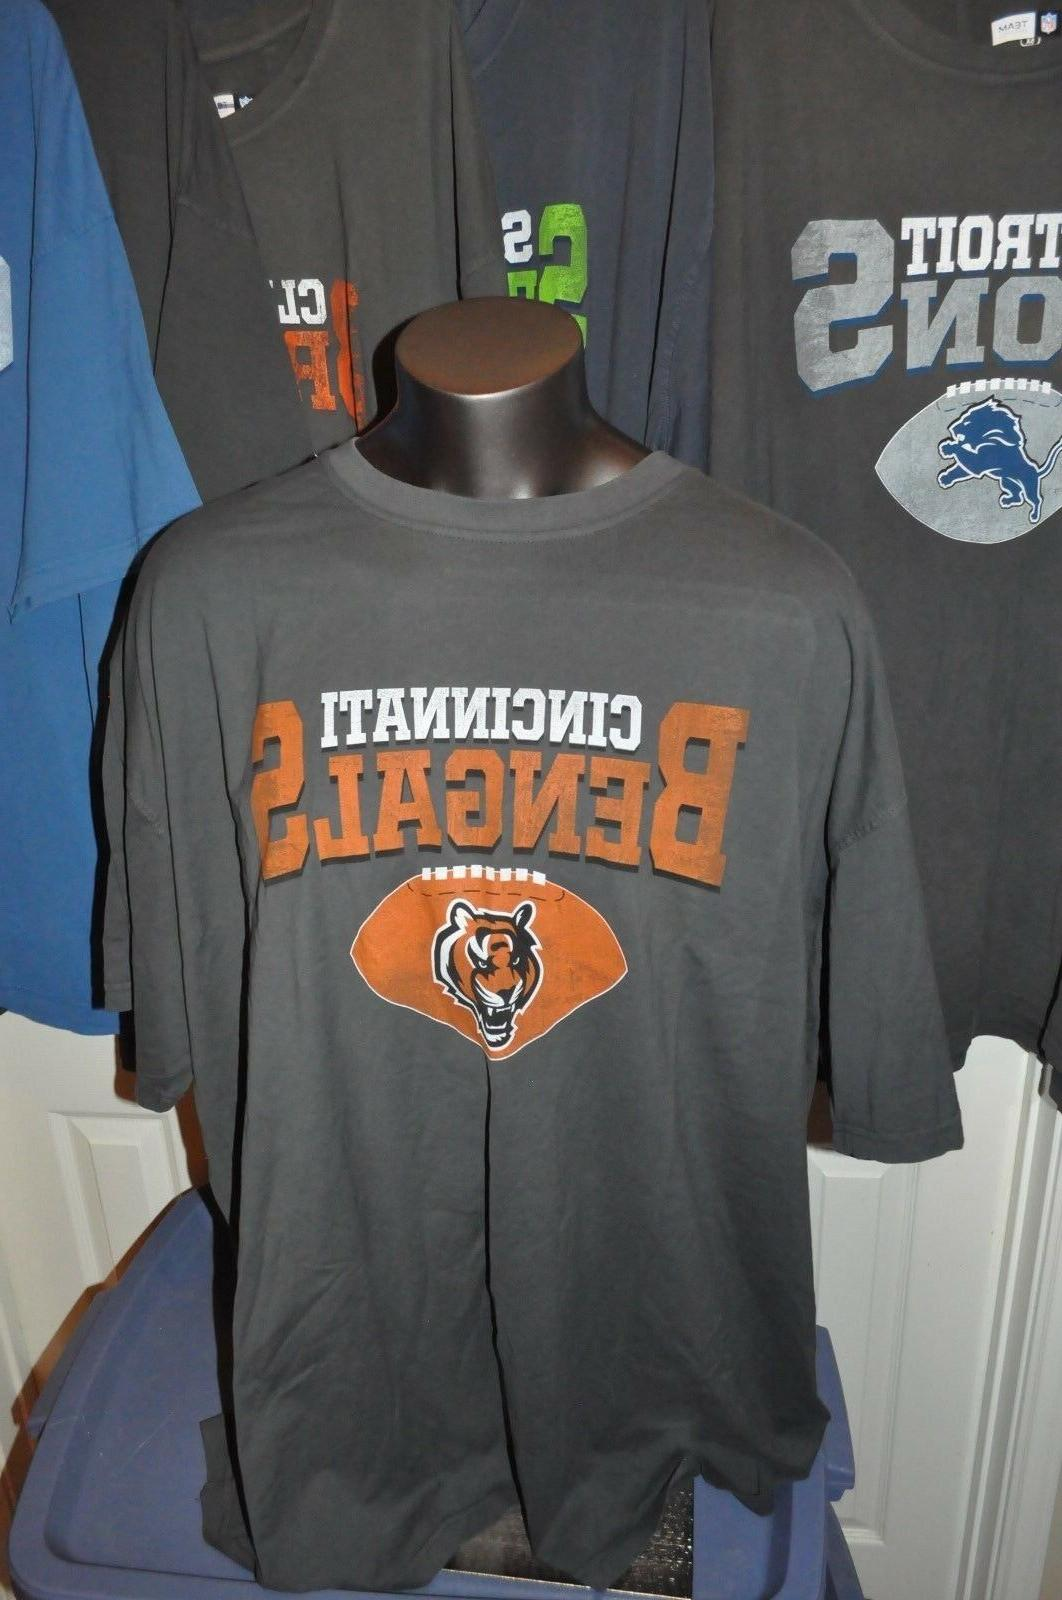 NFL Team 3x-6x Raiders,Colts,Bengals,Lions,Giants,Seahawks,BROWNS